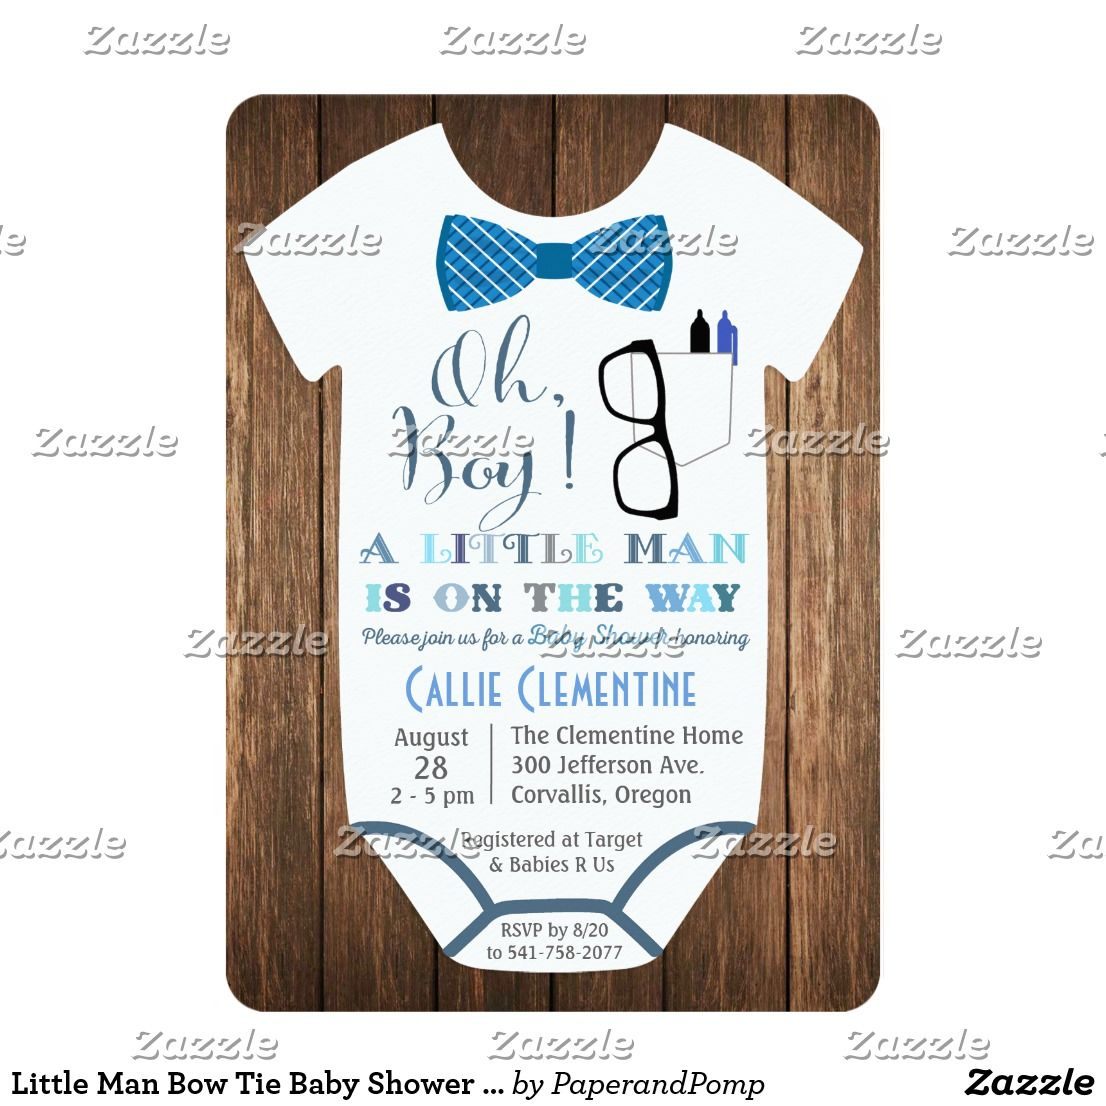 Little Man Bow Tie Baby Shower Invitation | Shower invitations